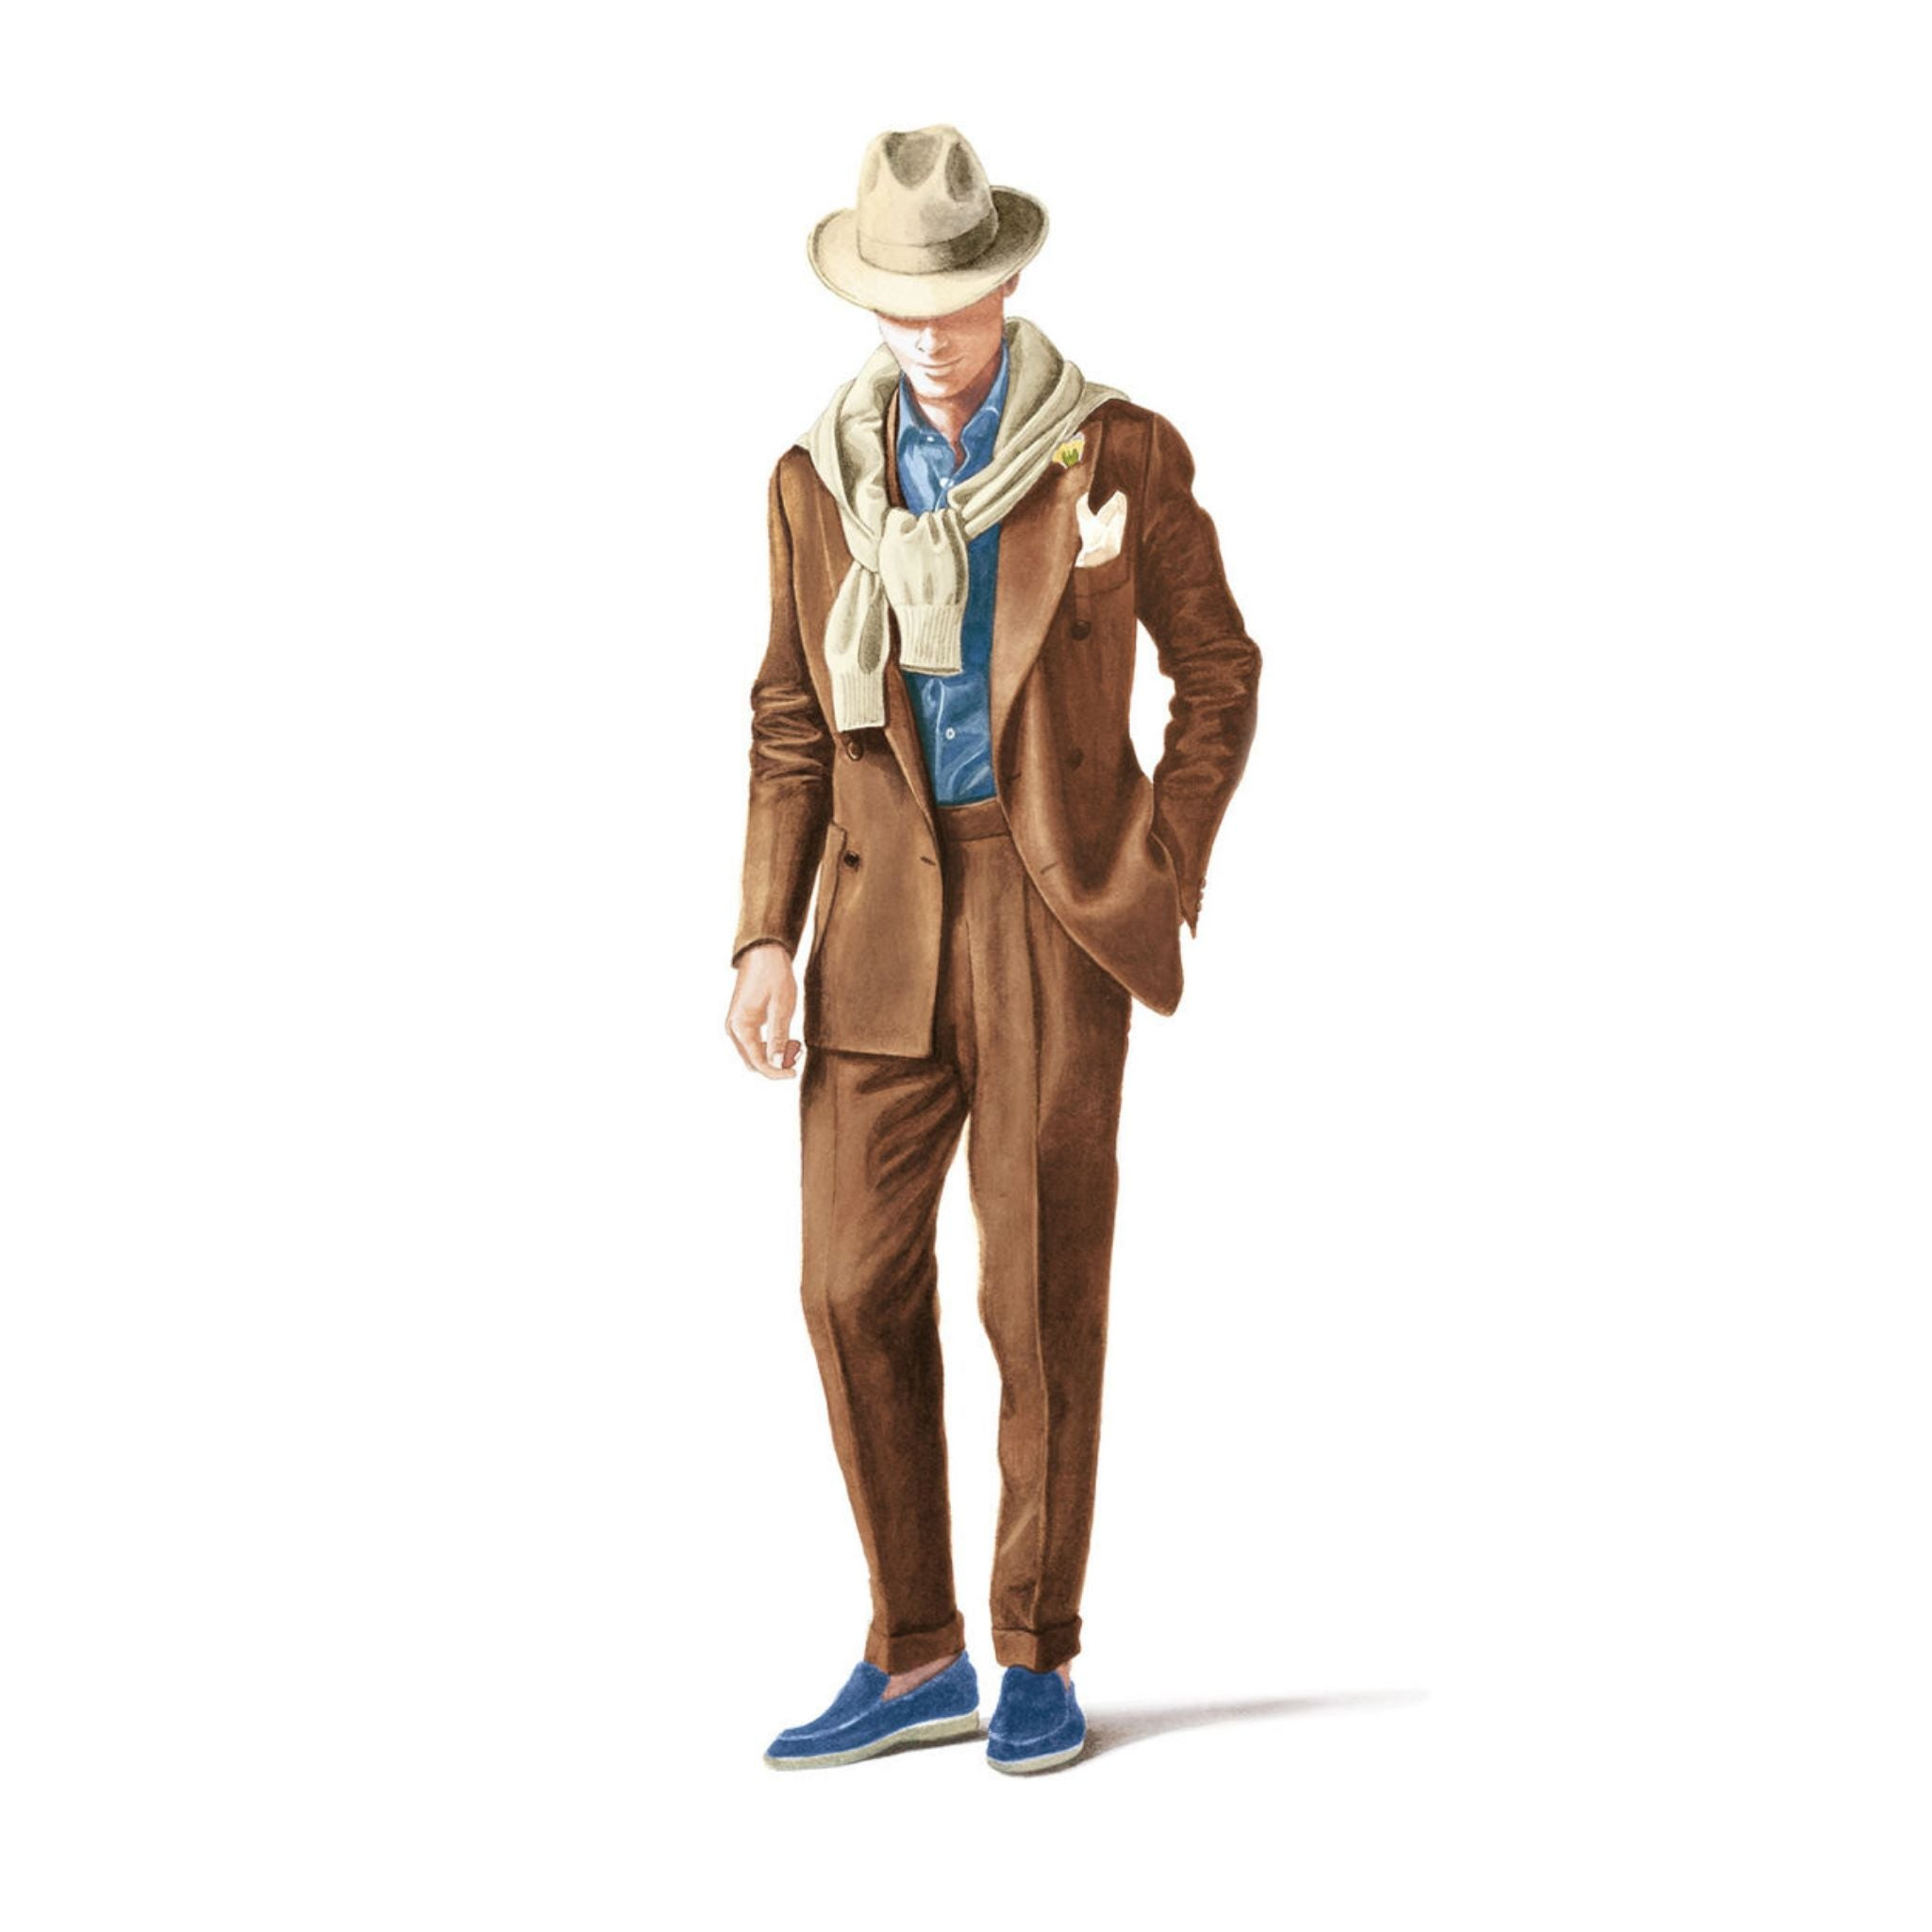 Loro Piana spring and summer 2016 brown double-breasted suit